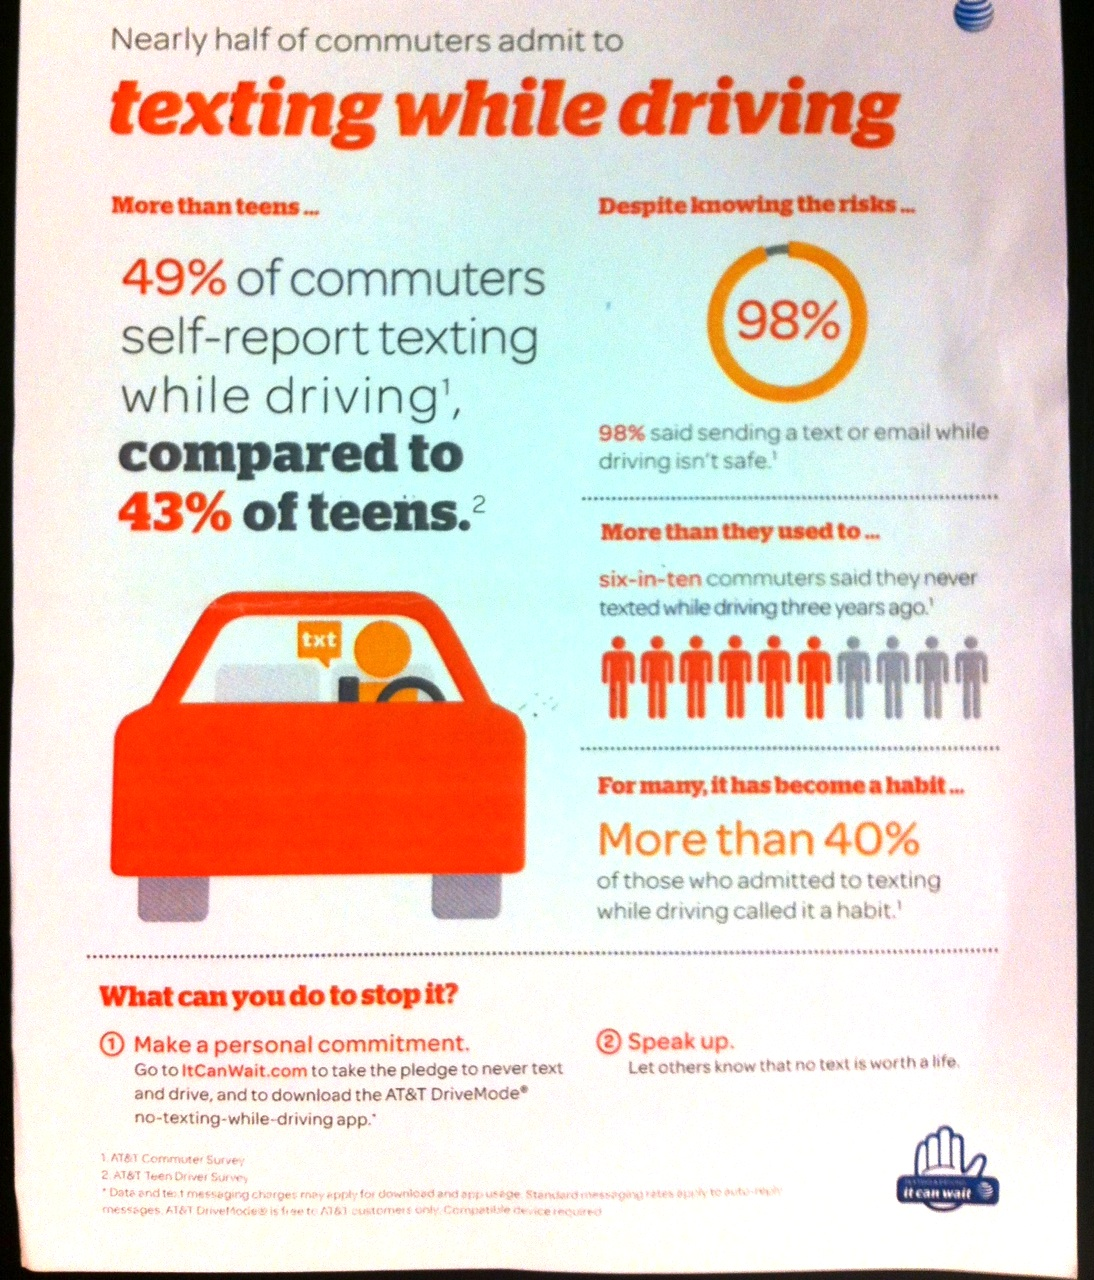 AT&T Texting While Driving